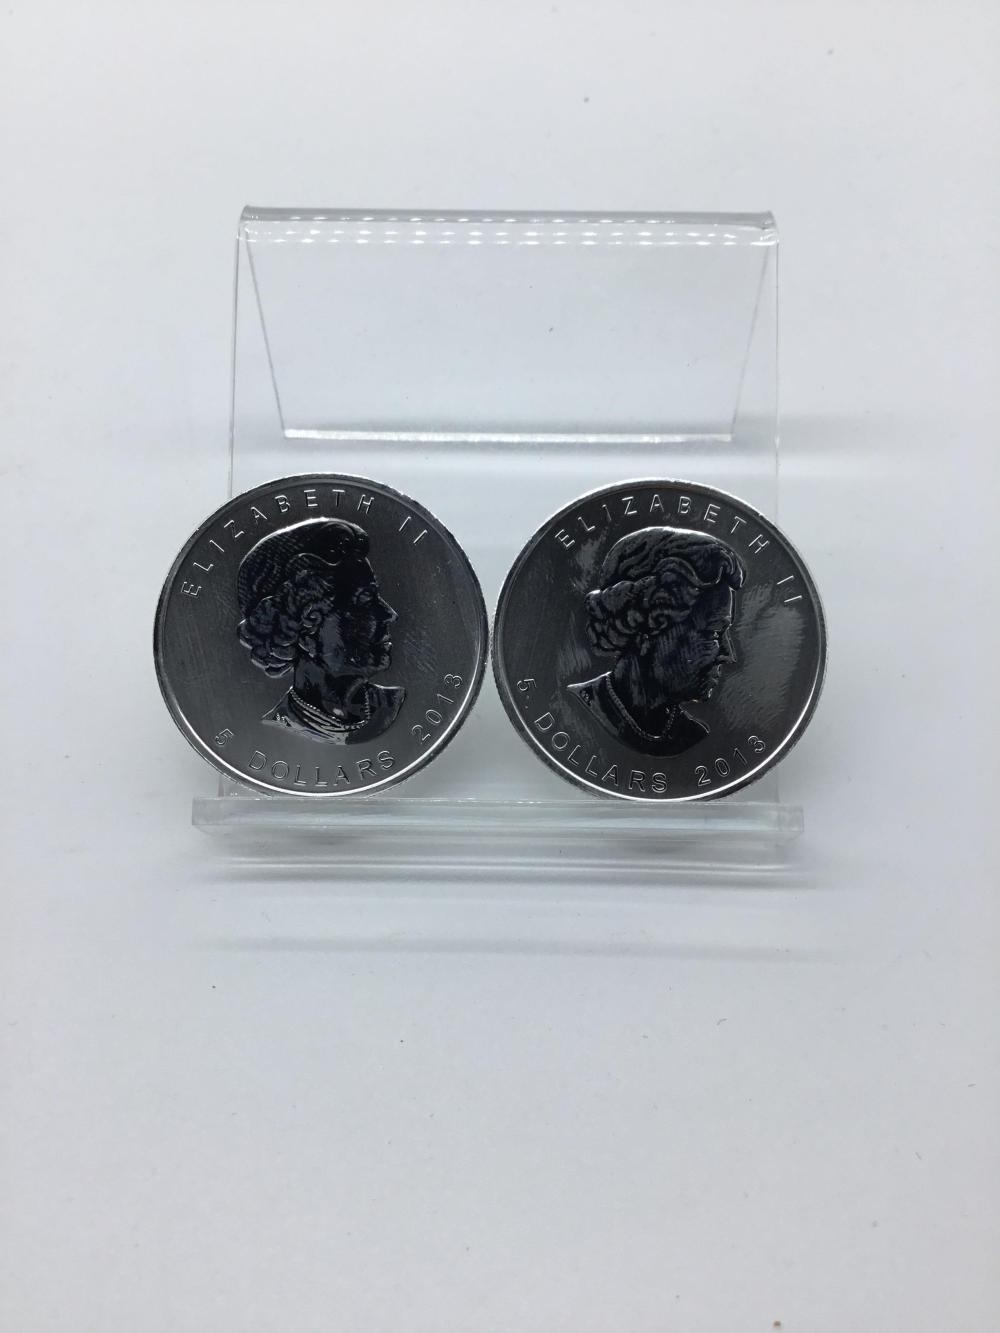 2013 Canadian Maple leaf silver $5 coin